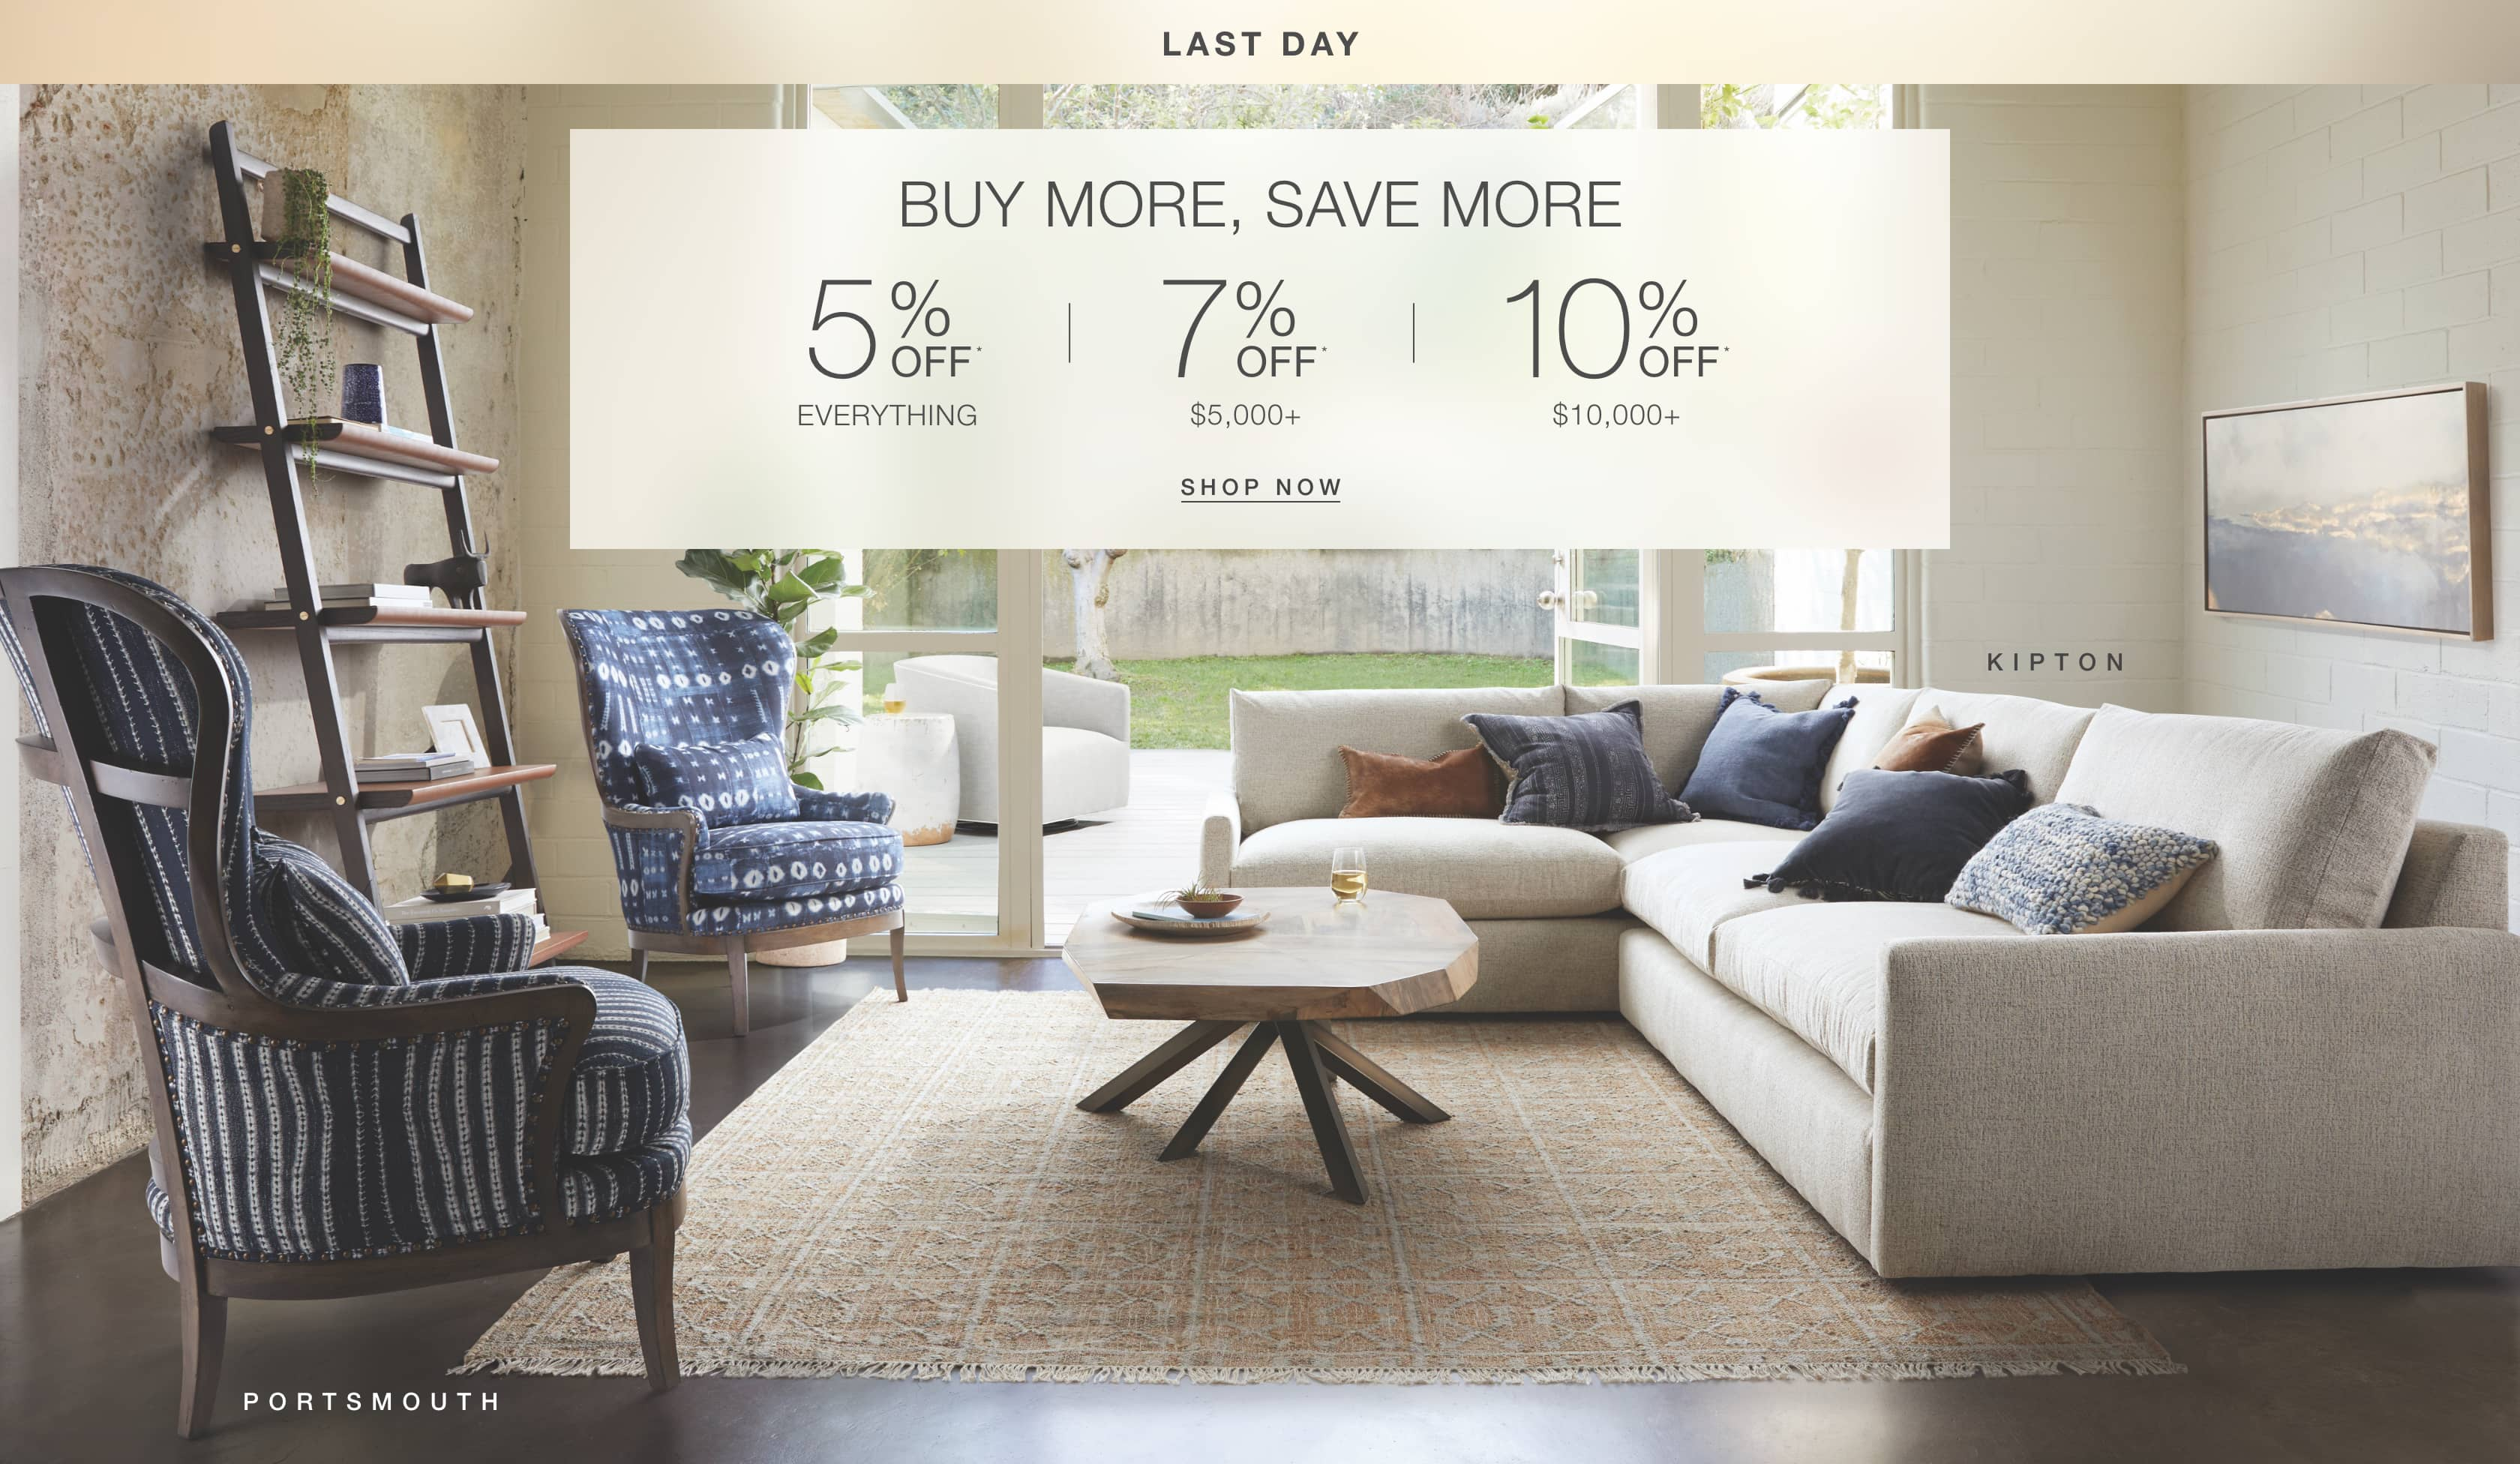 Shop Arhaus Living Room furniture in the Buy More, Save More sale